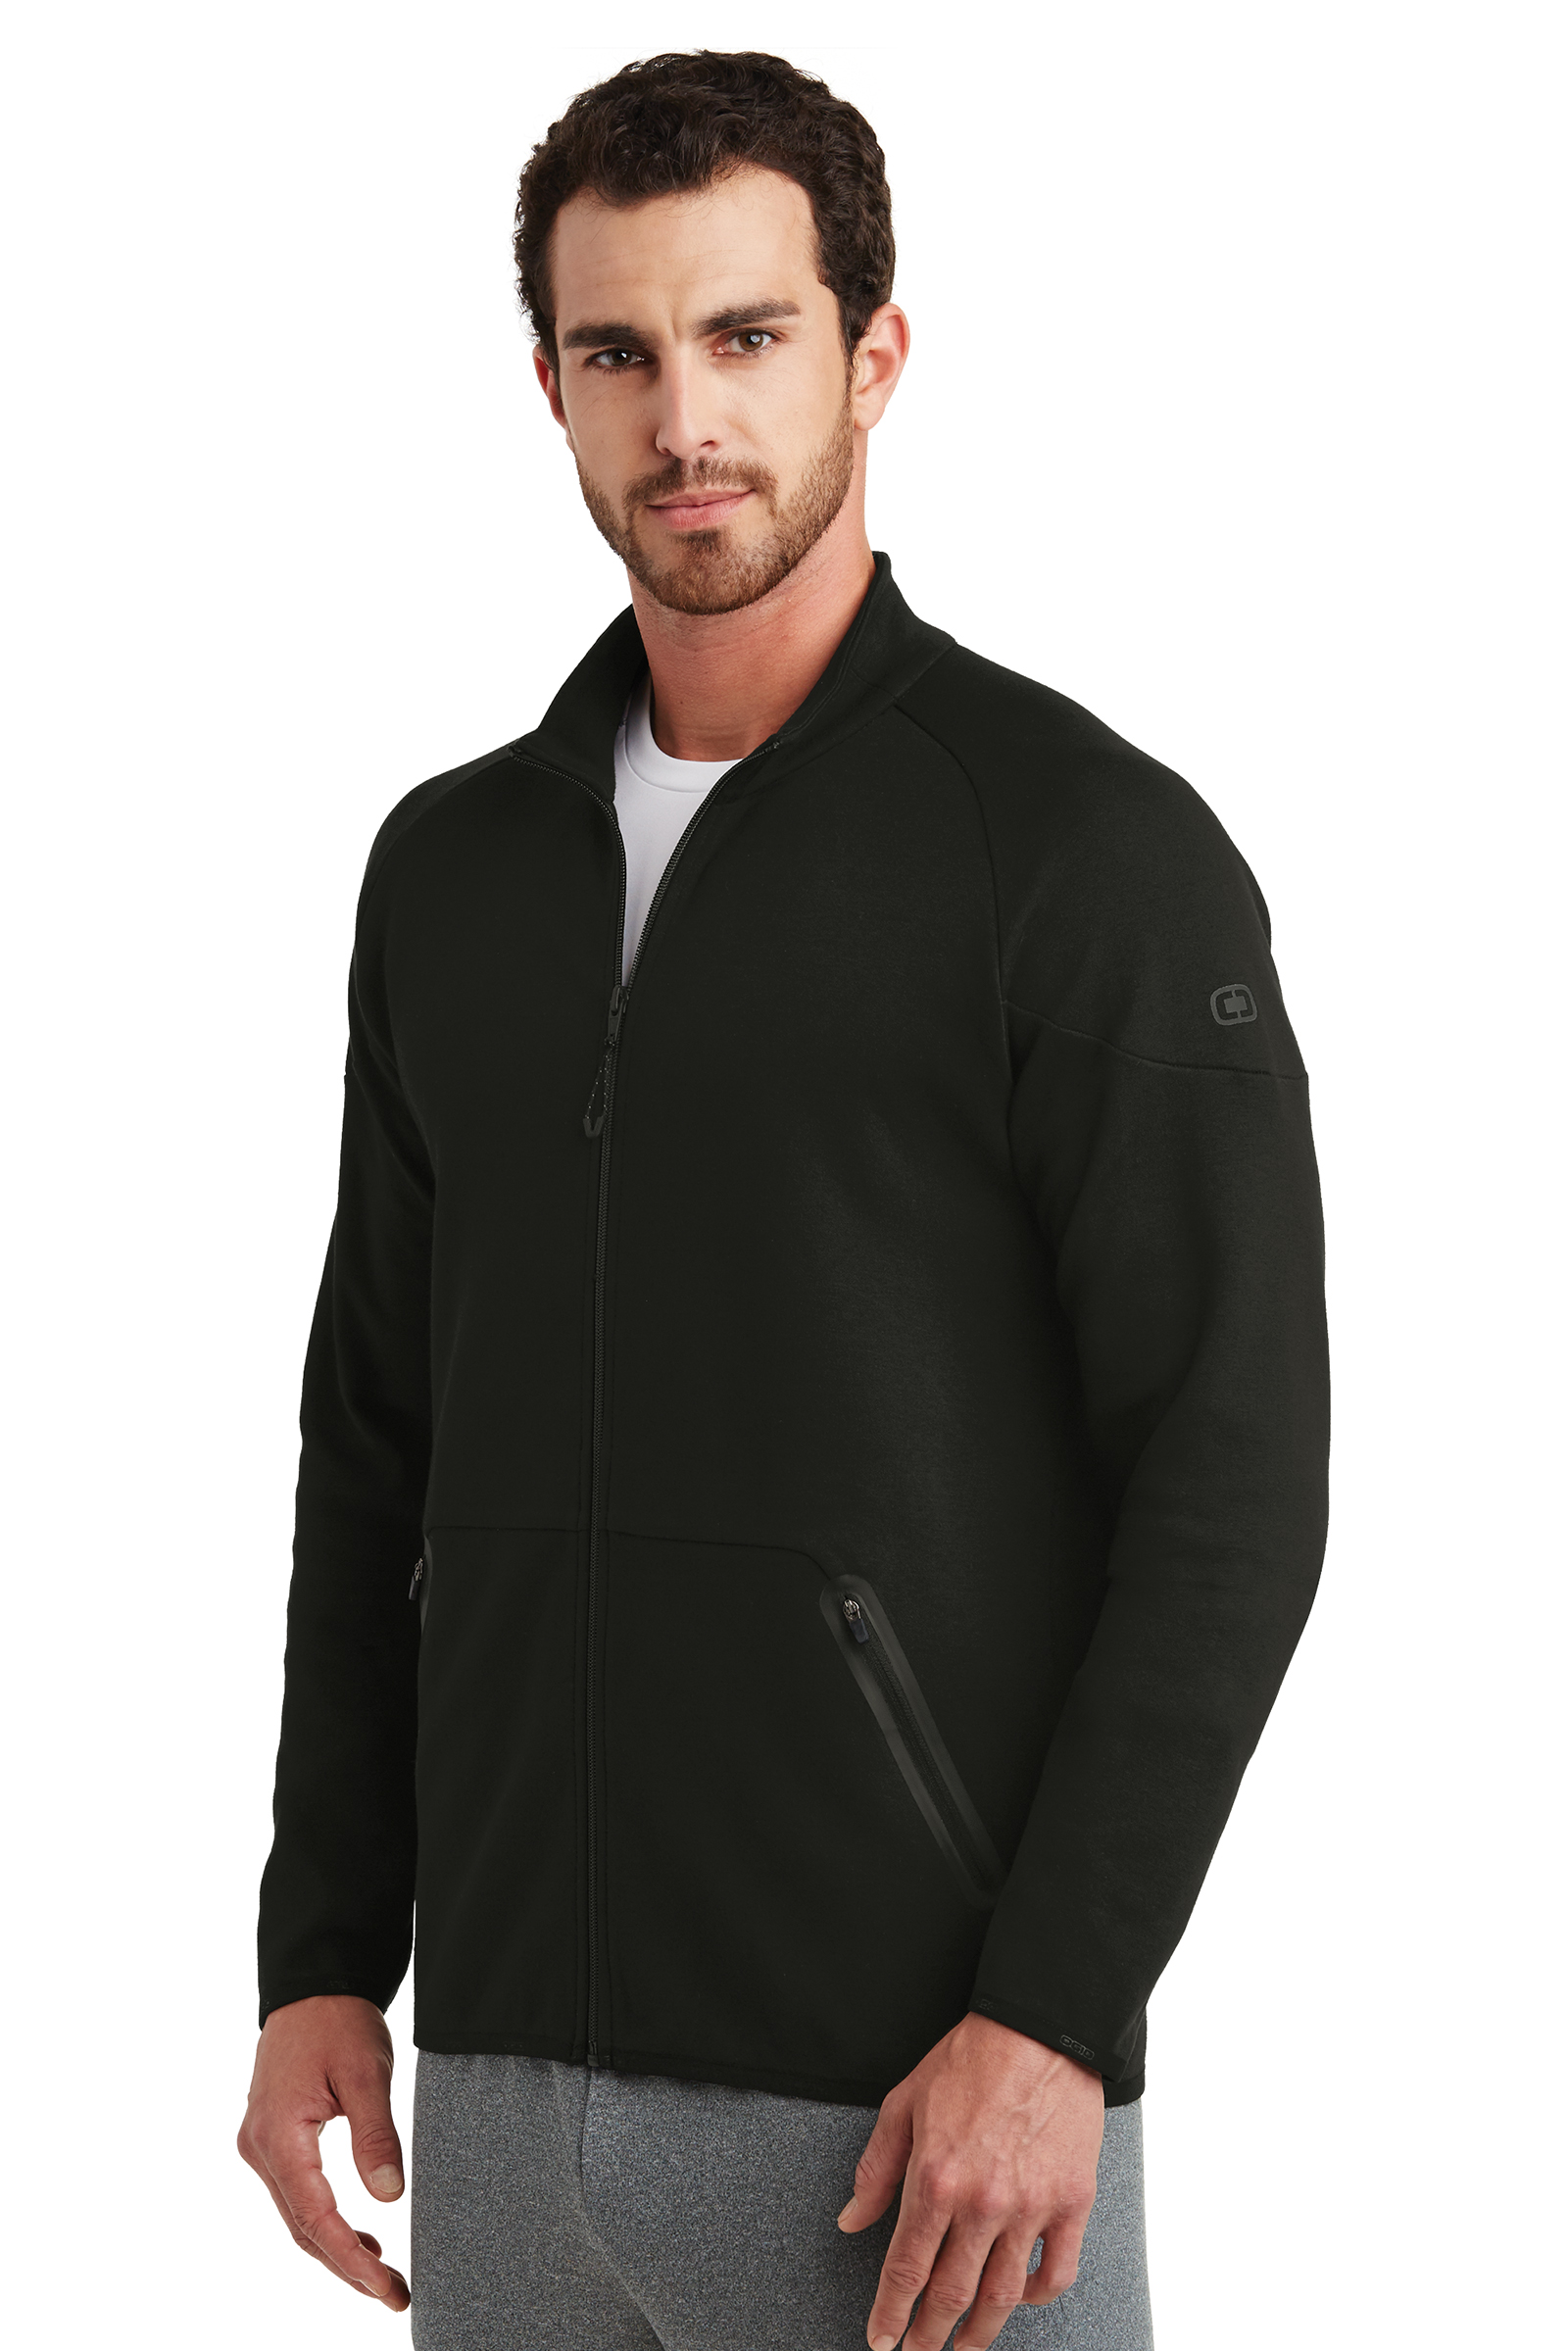 OGIO ENDURANCE Embroidered Men's Origin Jacket